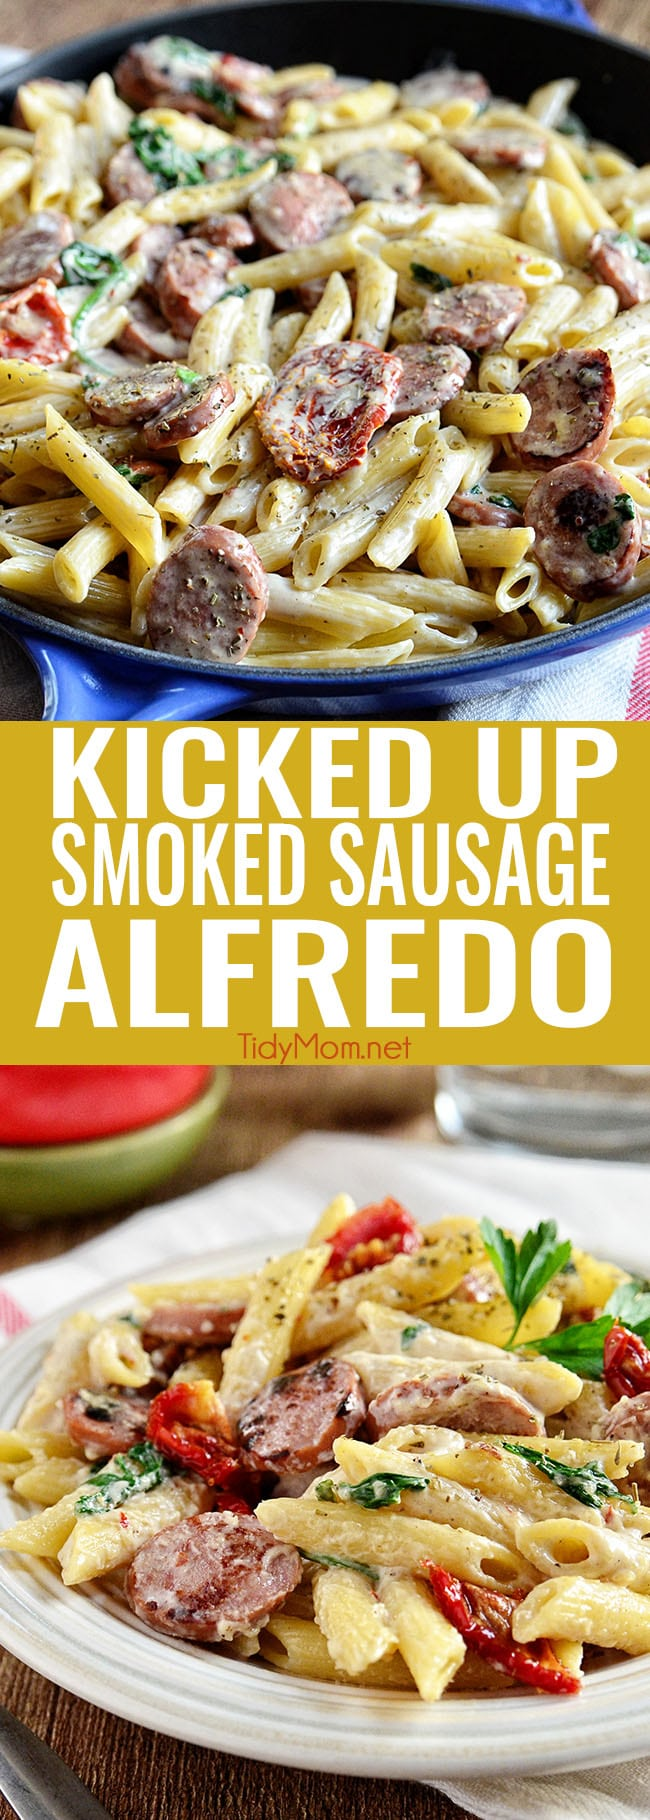 Savory smoked turkey sausage combined with sun-dried tomatoes, garlic, spinach, and Parmesan cheese make this a sensational 15-minute Smoked Sausage Alfredo recipe the whole family will love. Printable recipe + VIDEO at TidyMom.net #recipe #easydinner #pasta